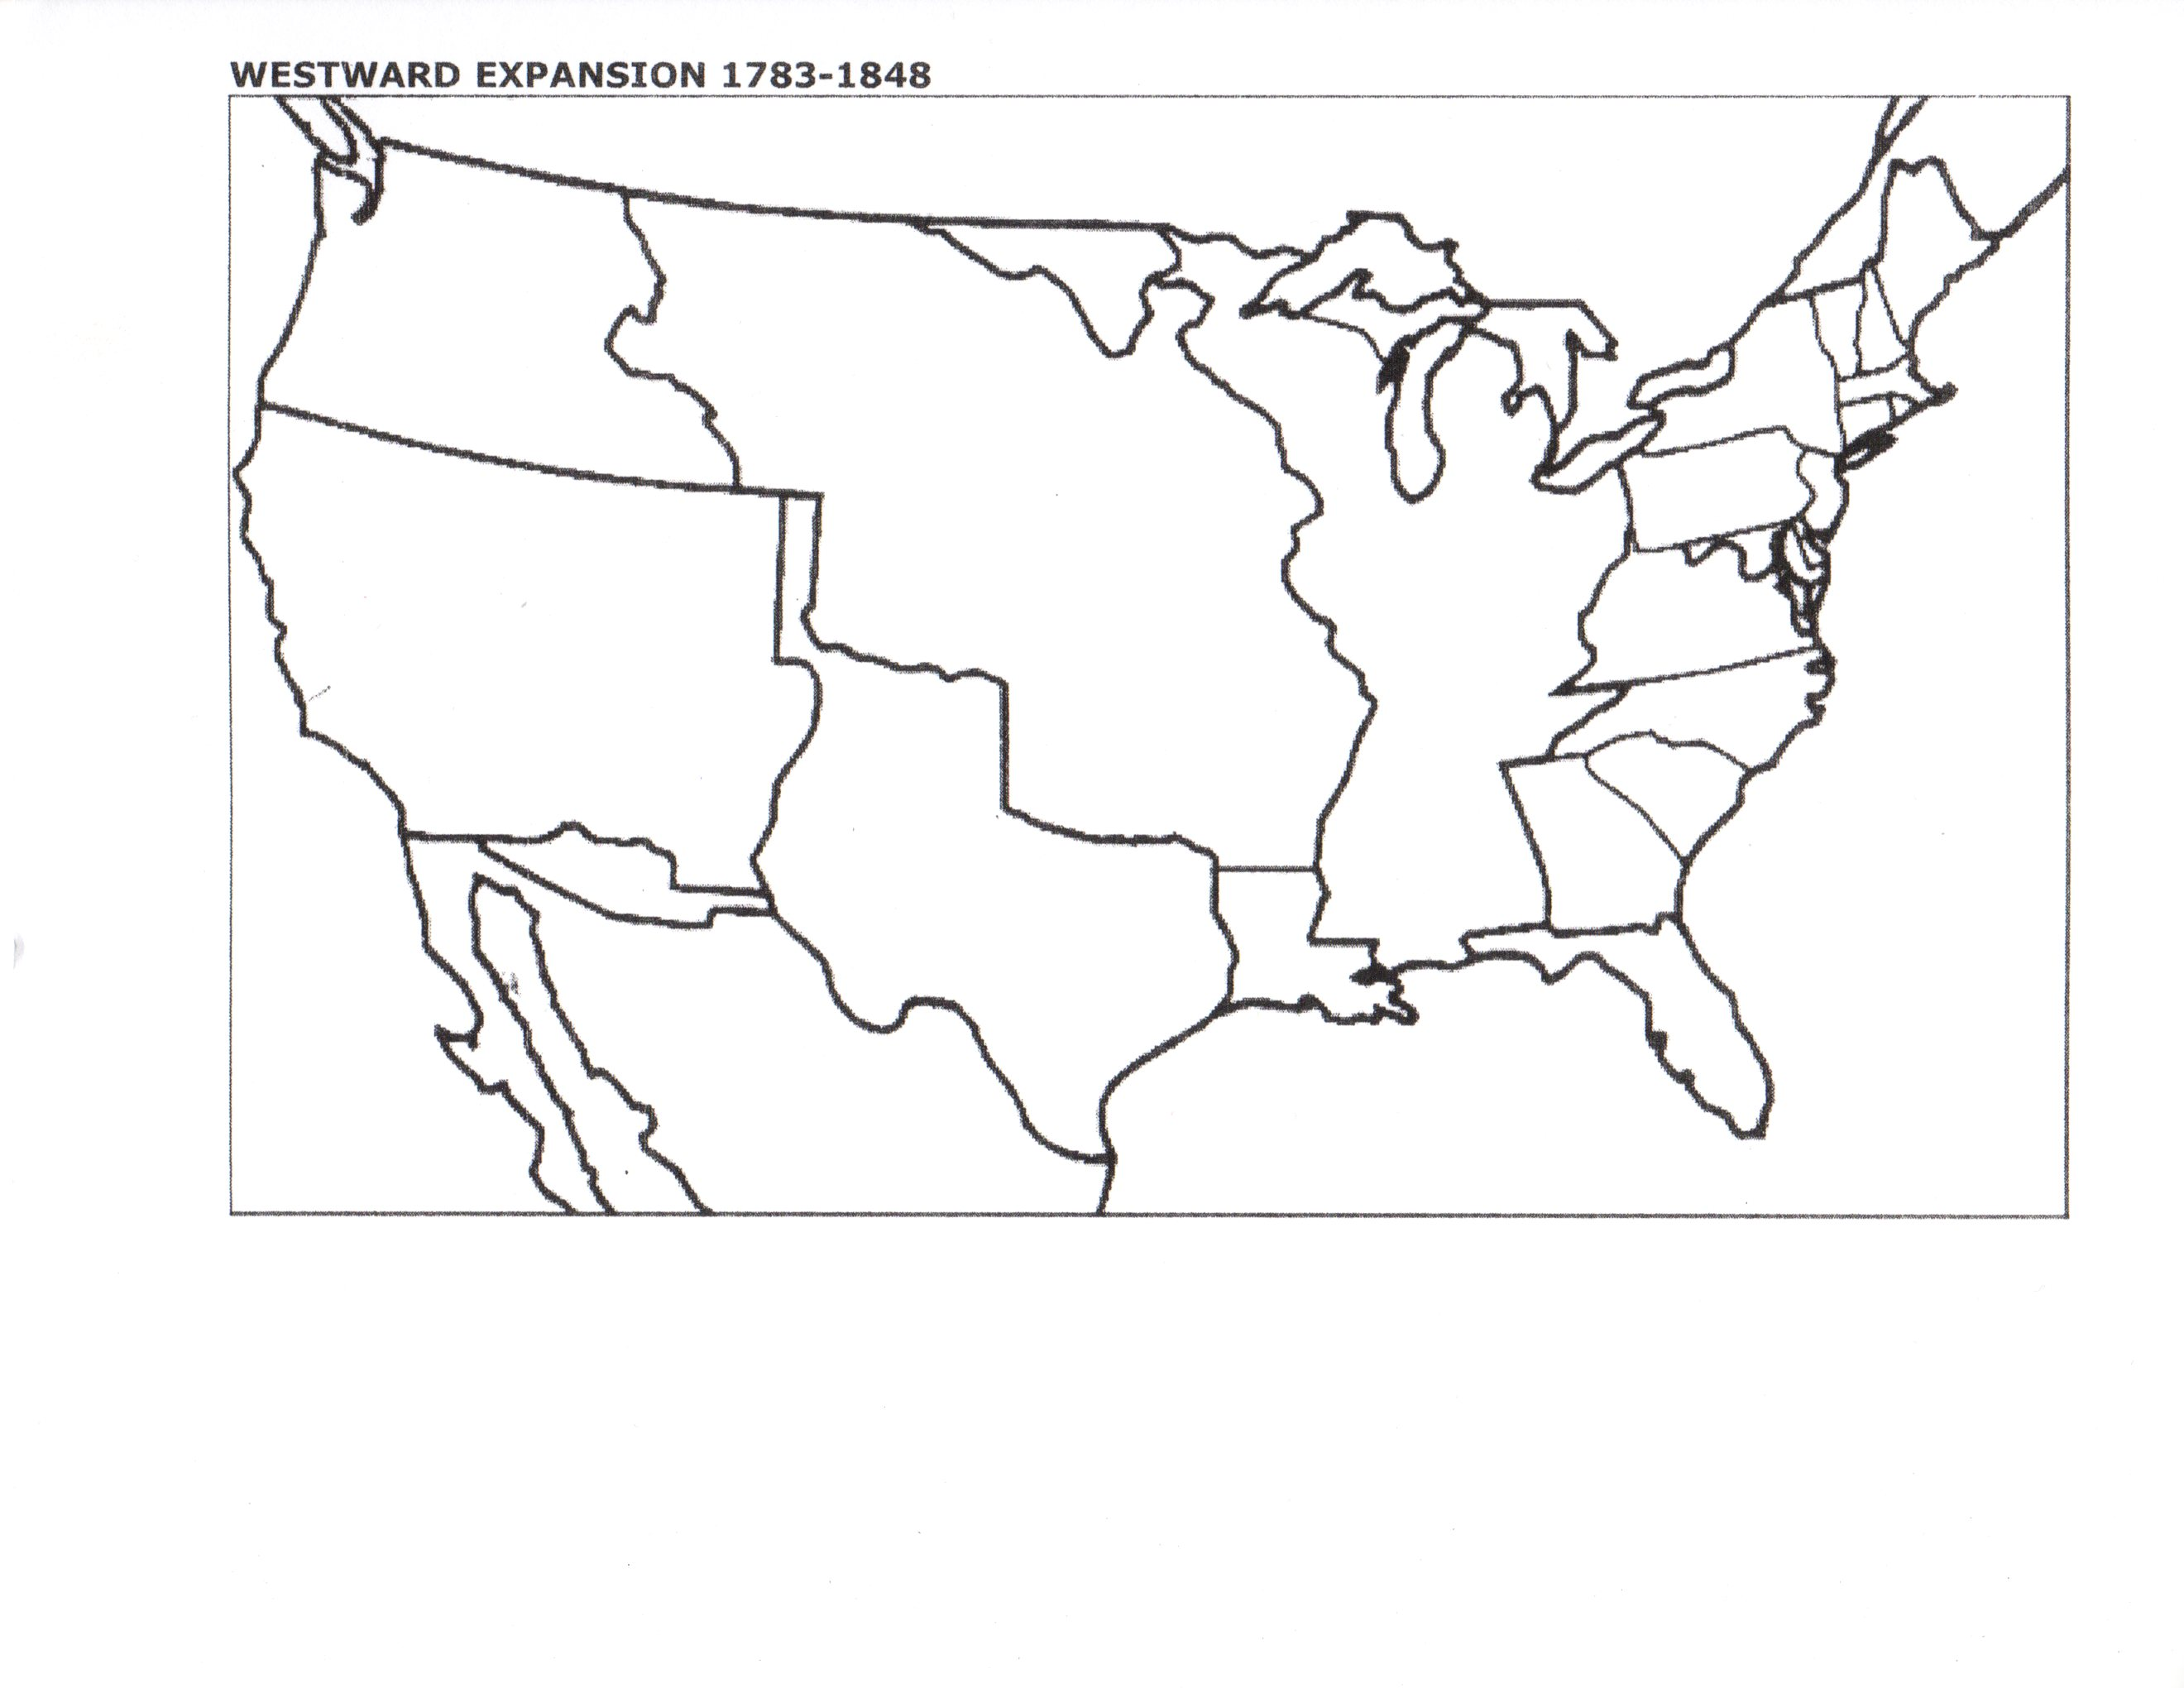 United States Map Without Names Openstreetmap Wikipedia - Map of usa without names